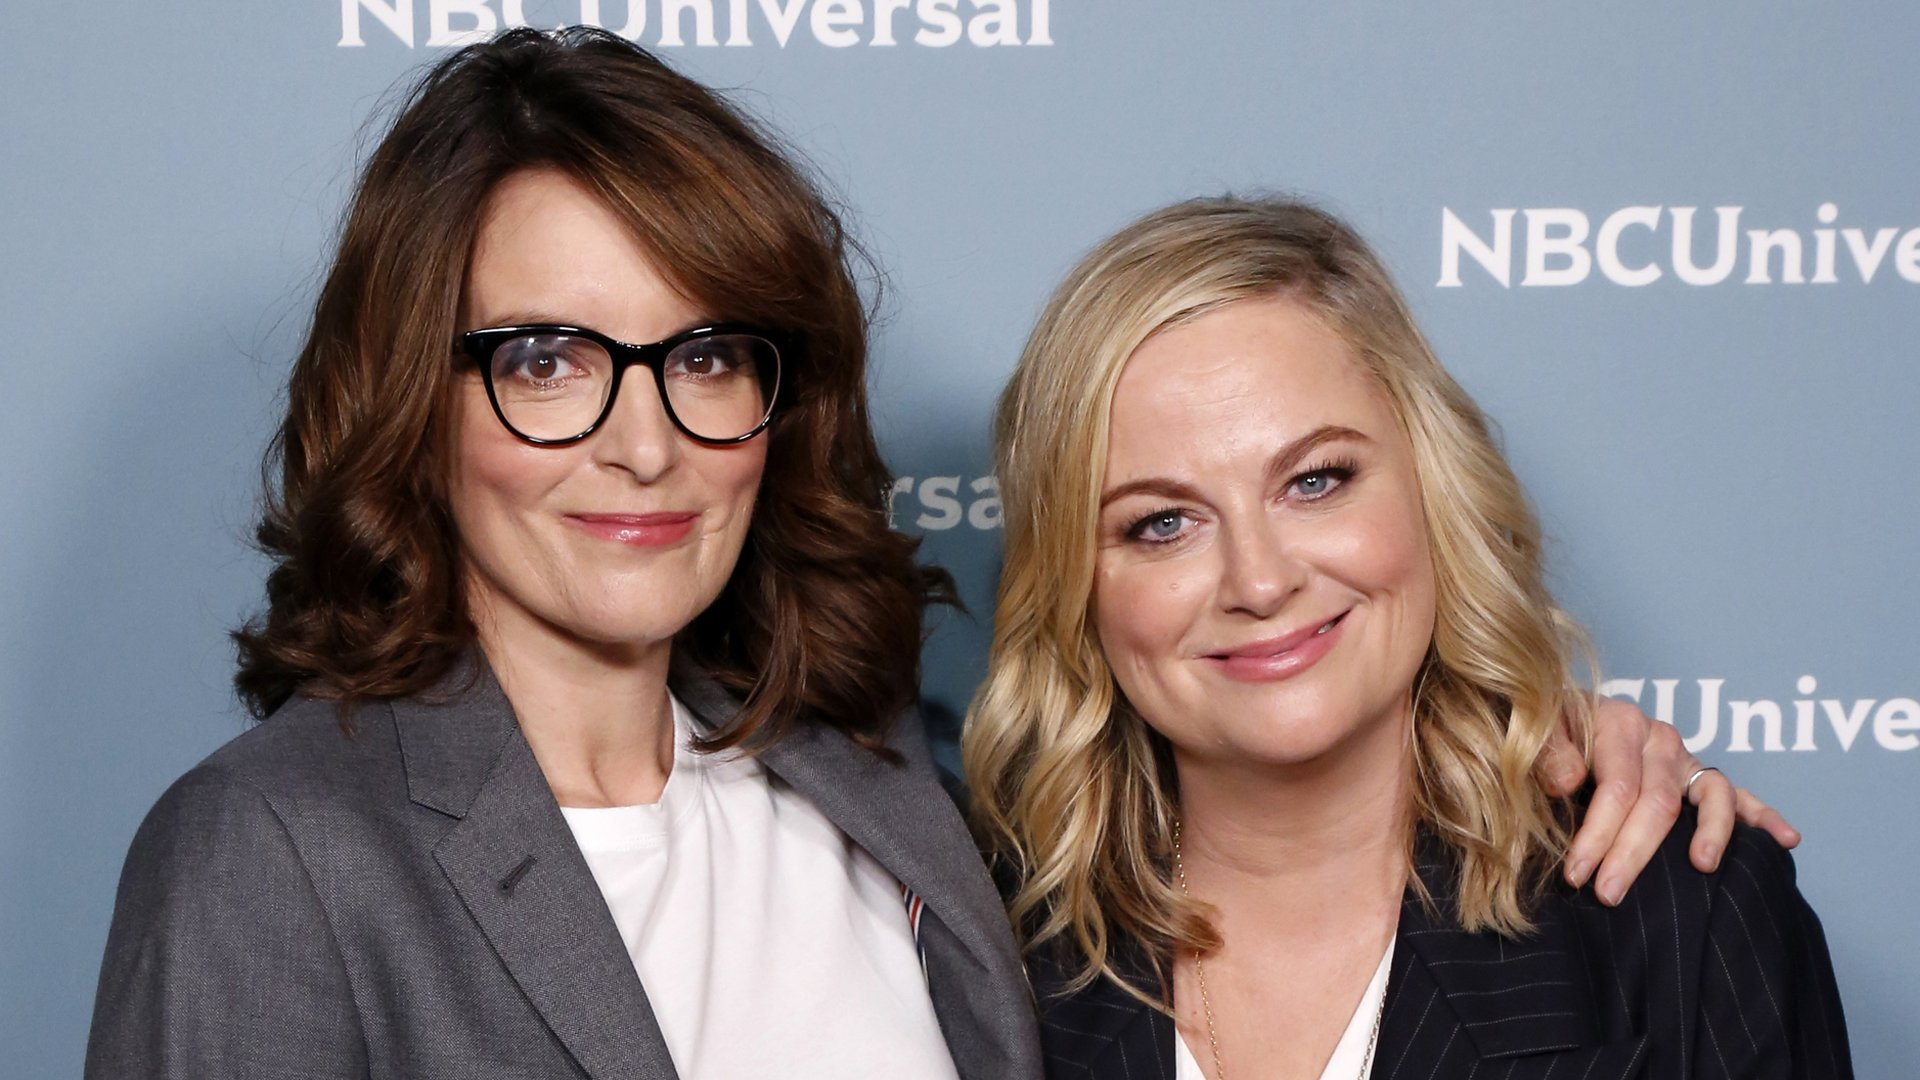 Tina Fey and Amy Poehler attend an NBCUniversal event in New York City on May 13, 2019. (Credit: Heidi Gutman/NBCUniversal/NBCU Photo Bank/NBCUniversal via Getty Images)